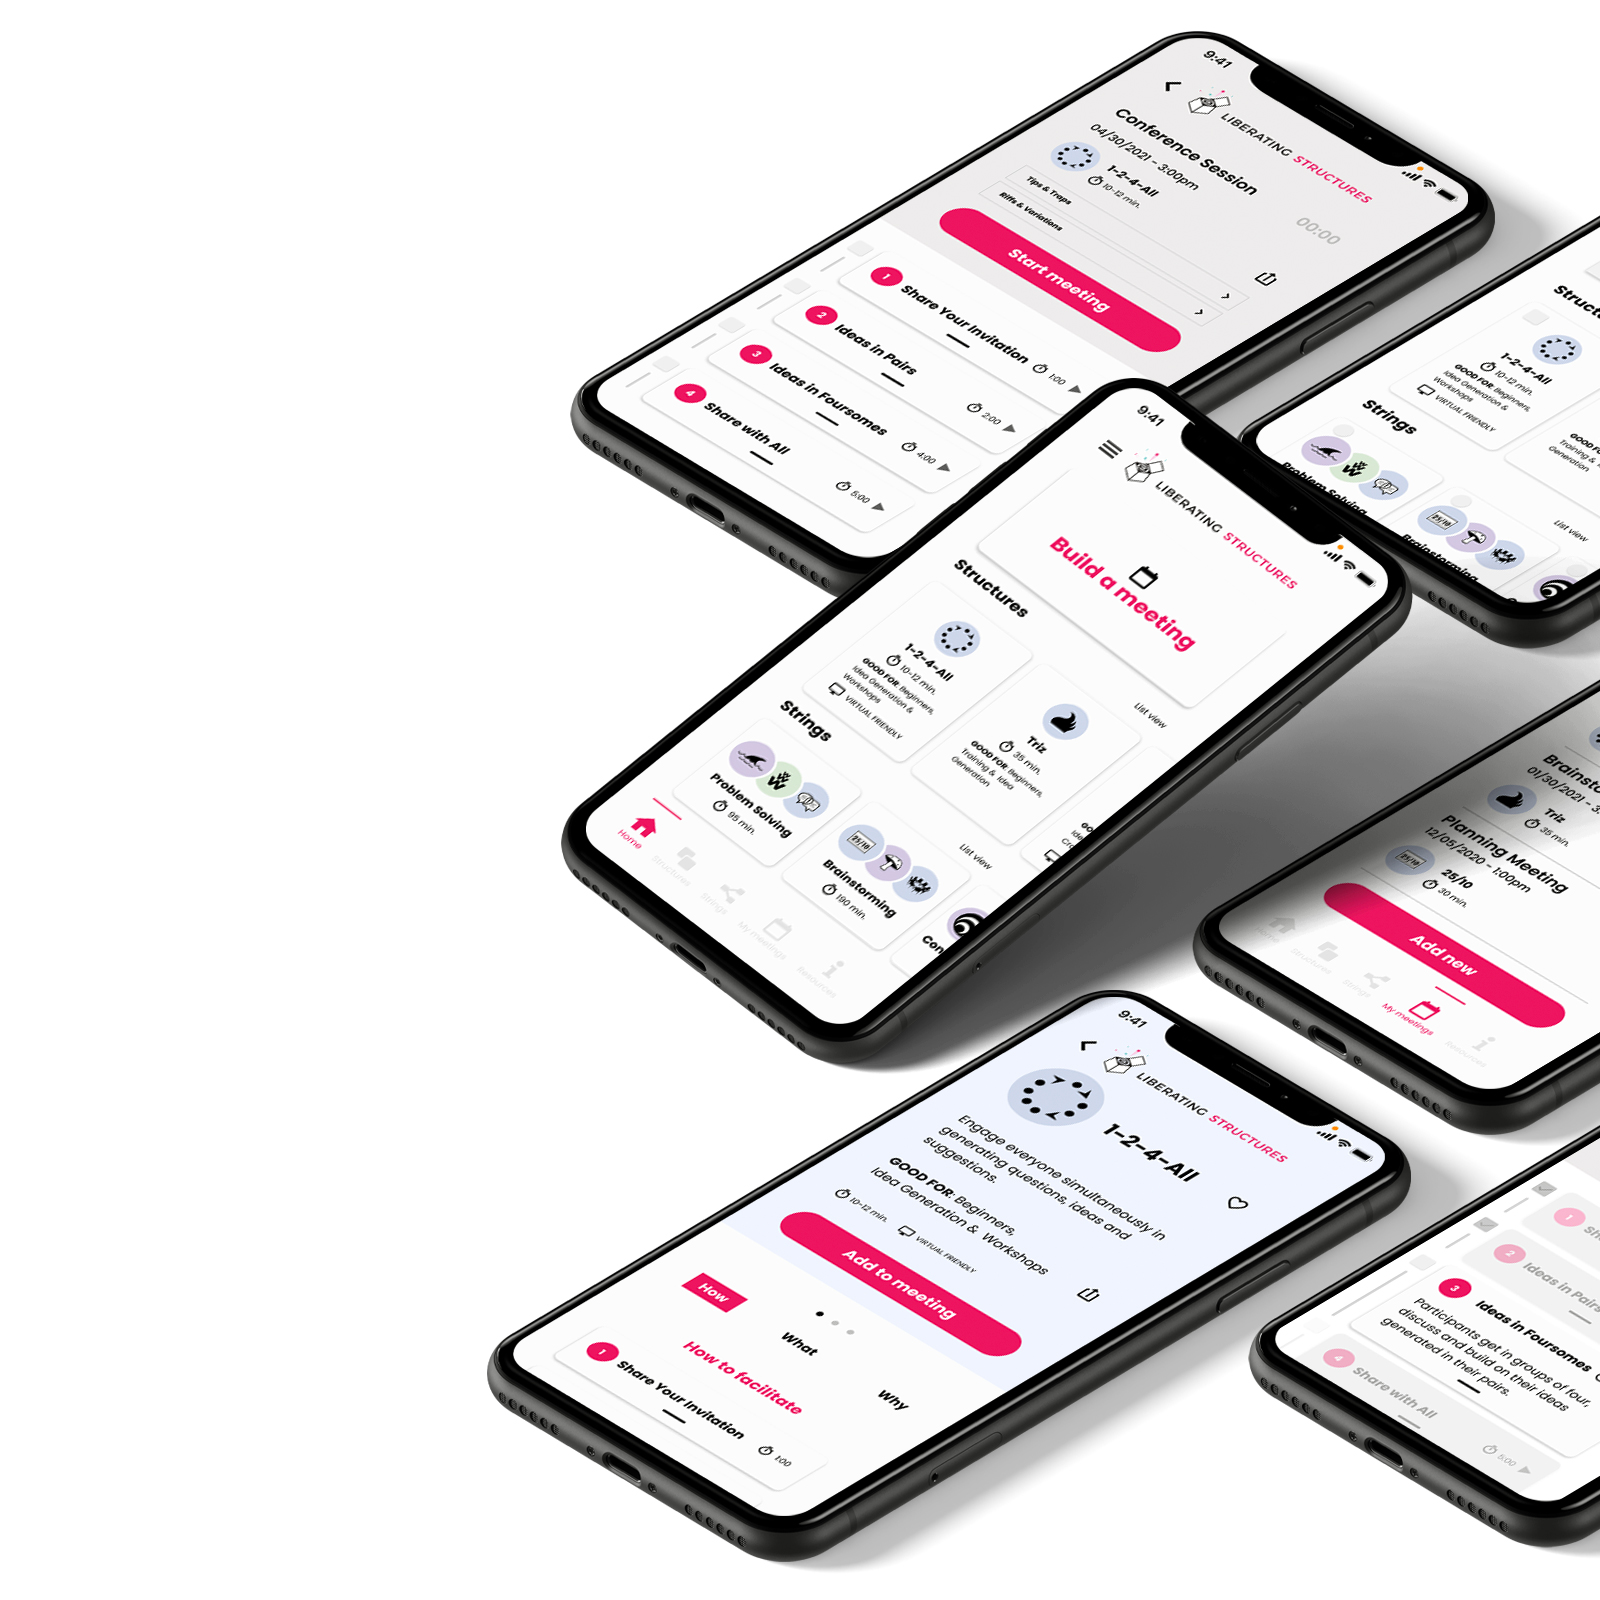 Iphones with Liberating Structures app redesign screens